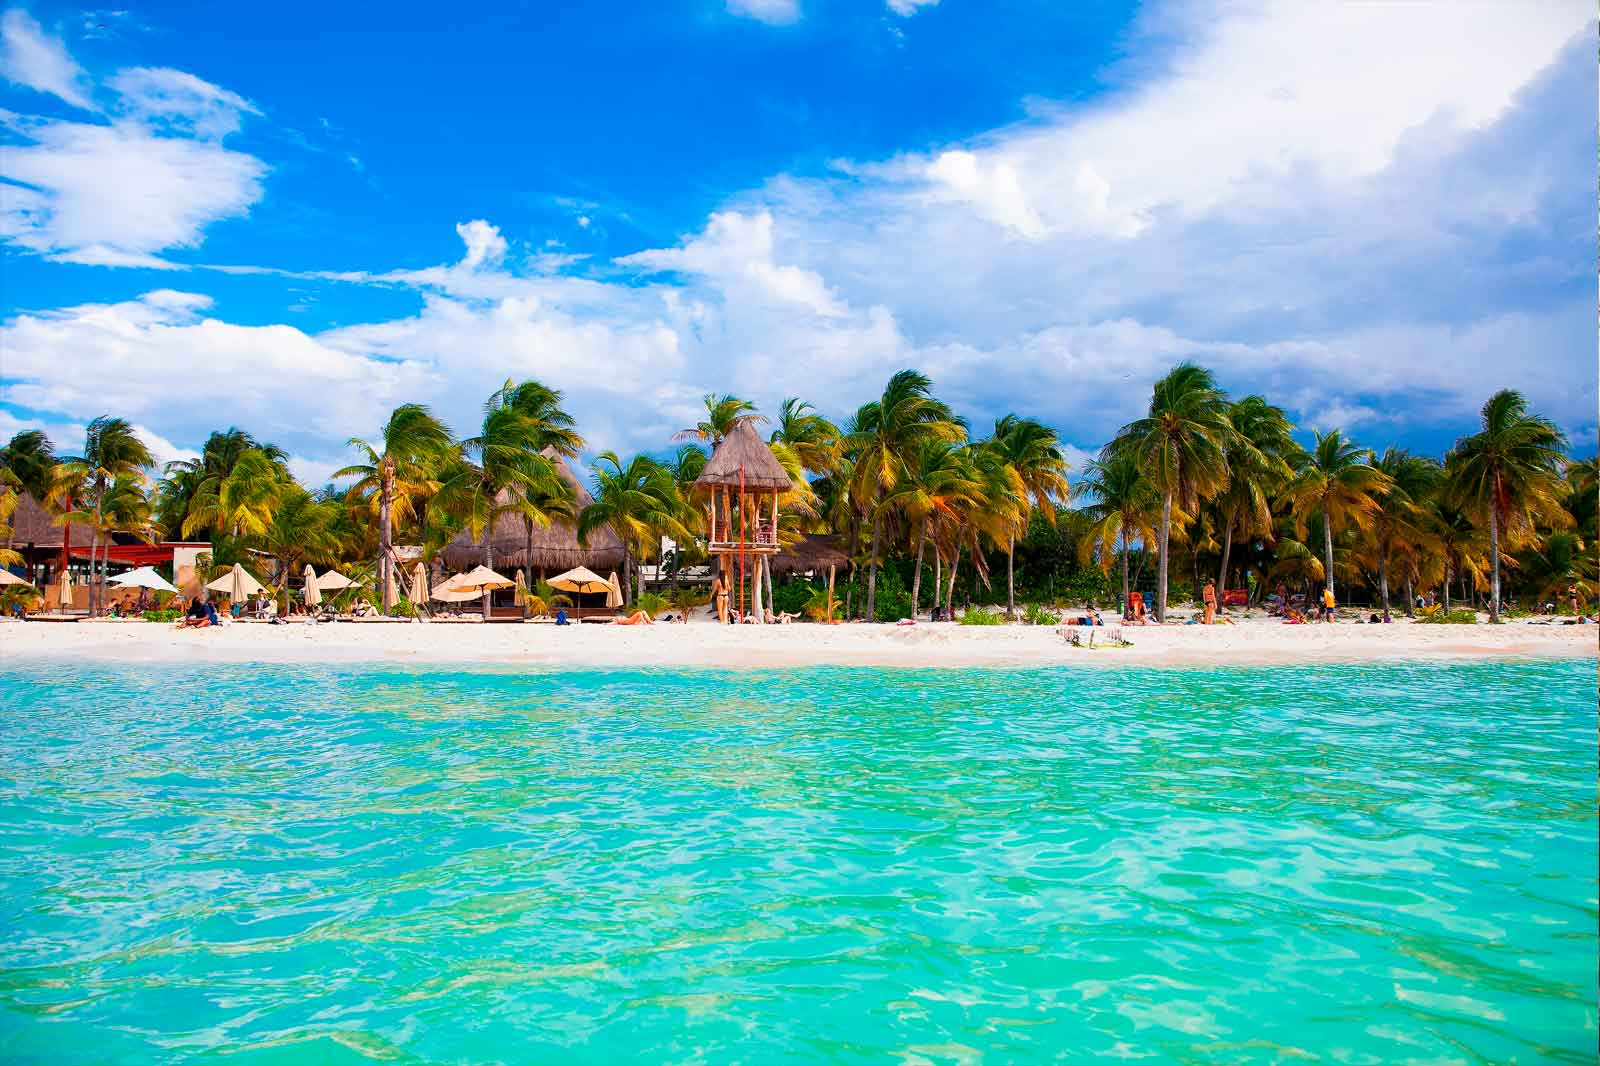 mexicofinder-travel-mexico-most-beautiful-islands-isla-mujeres